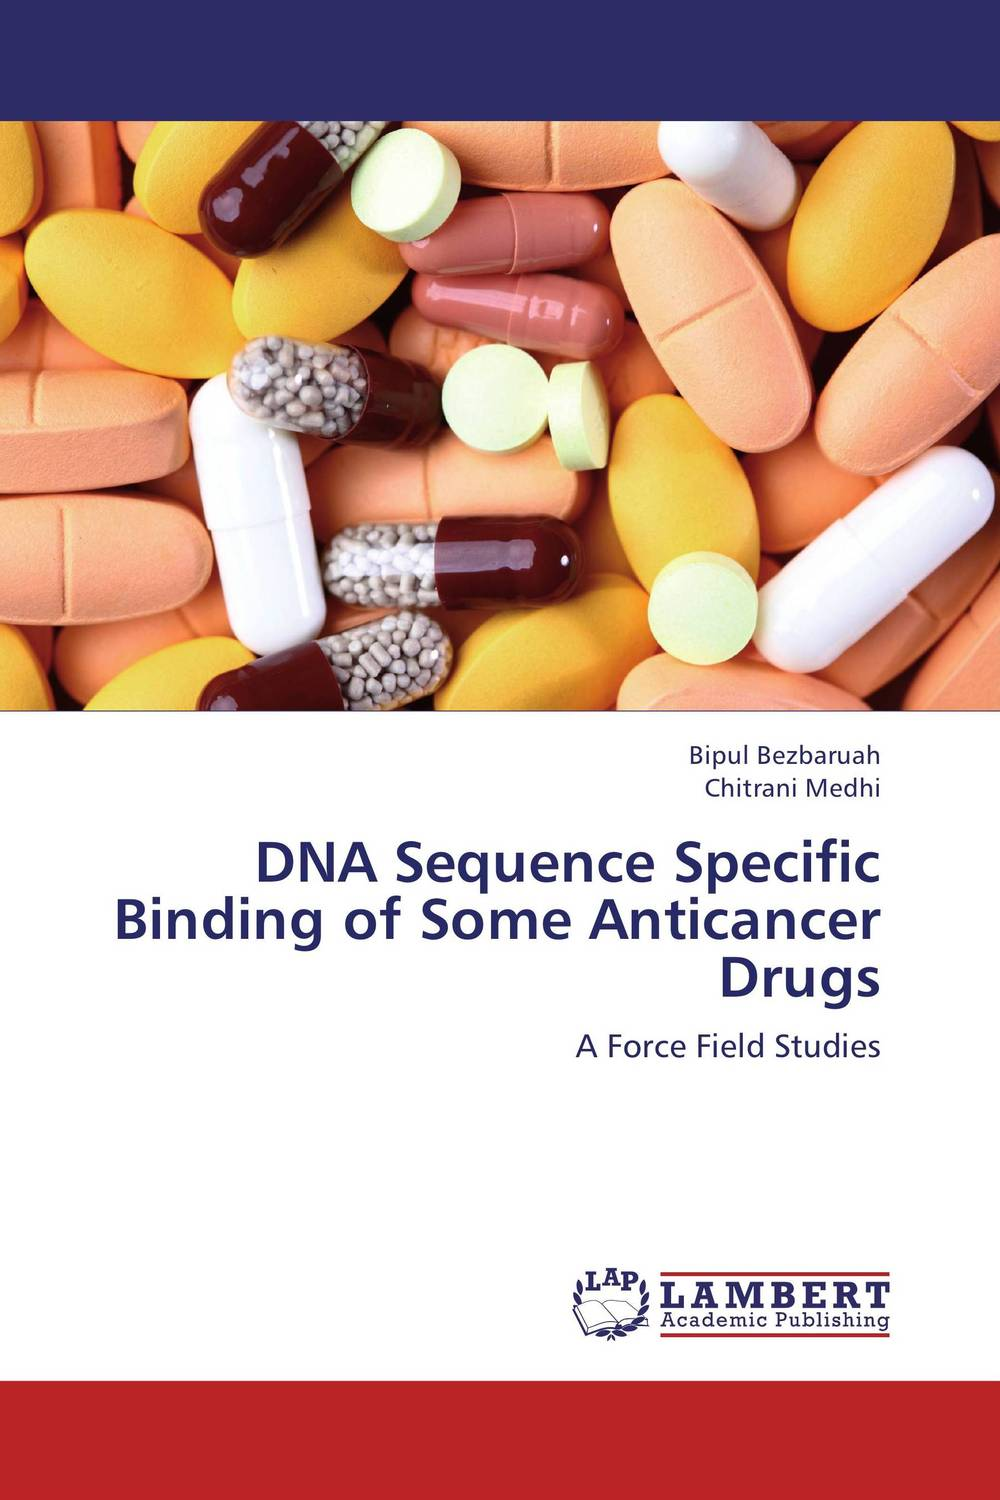 DNA Sequence Specific Binding of Some Anticancer Drugs rakesh kumar ameta and man singh quatroammonimuplatinate and anticancer chemistry of platinum via dfi